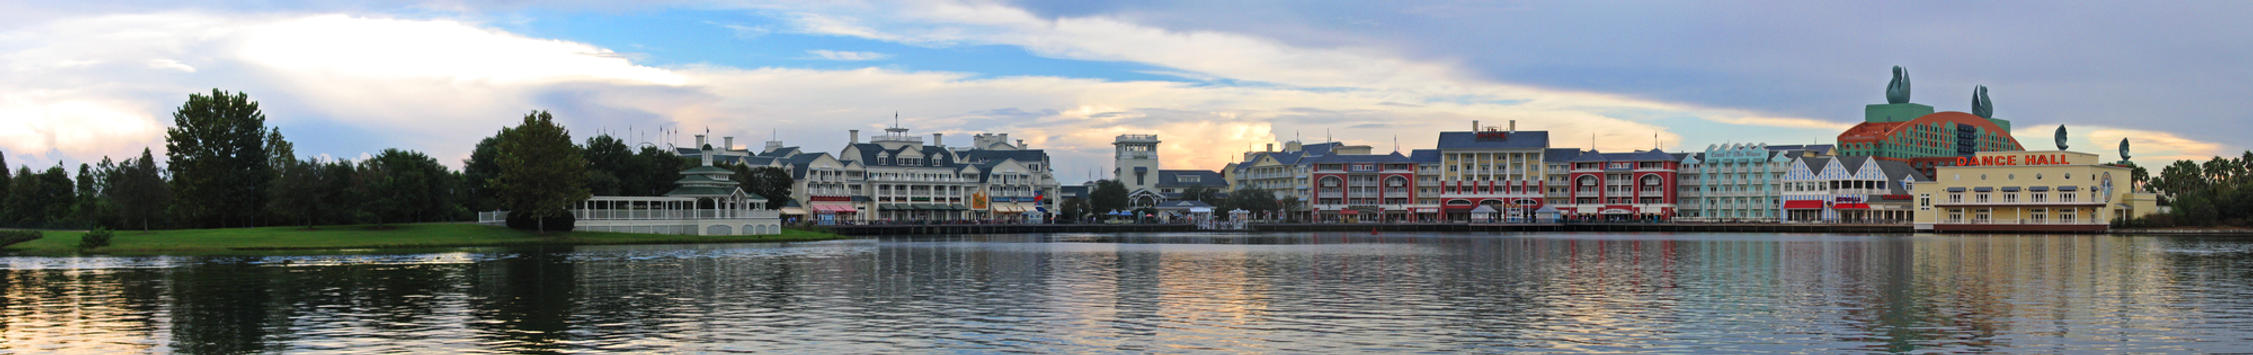 Boardwalk Inn 30 Panorama by AreteStock